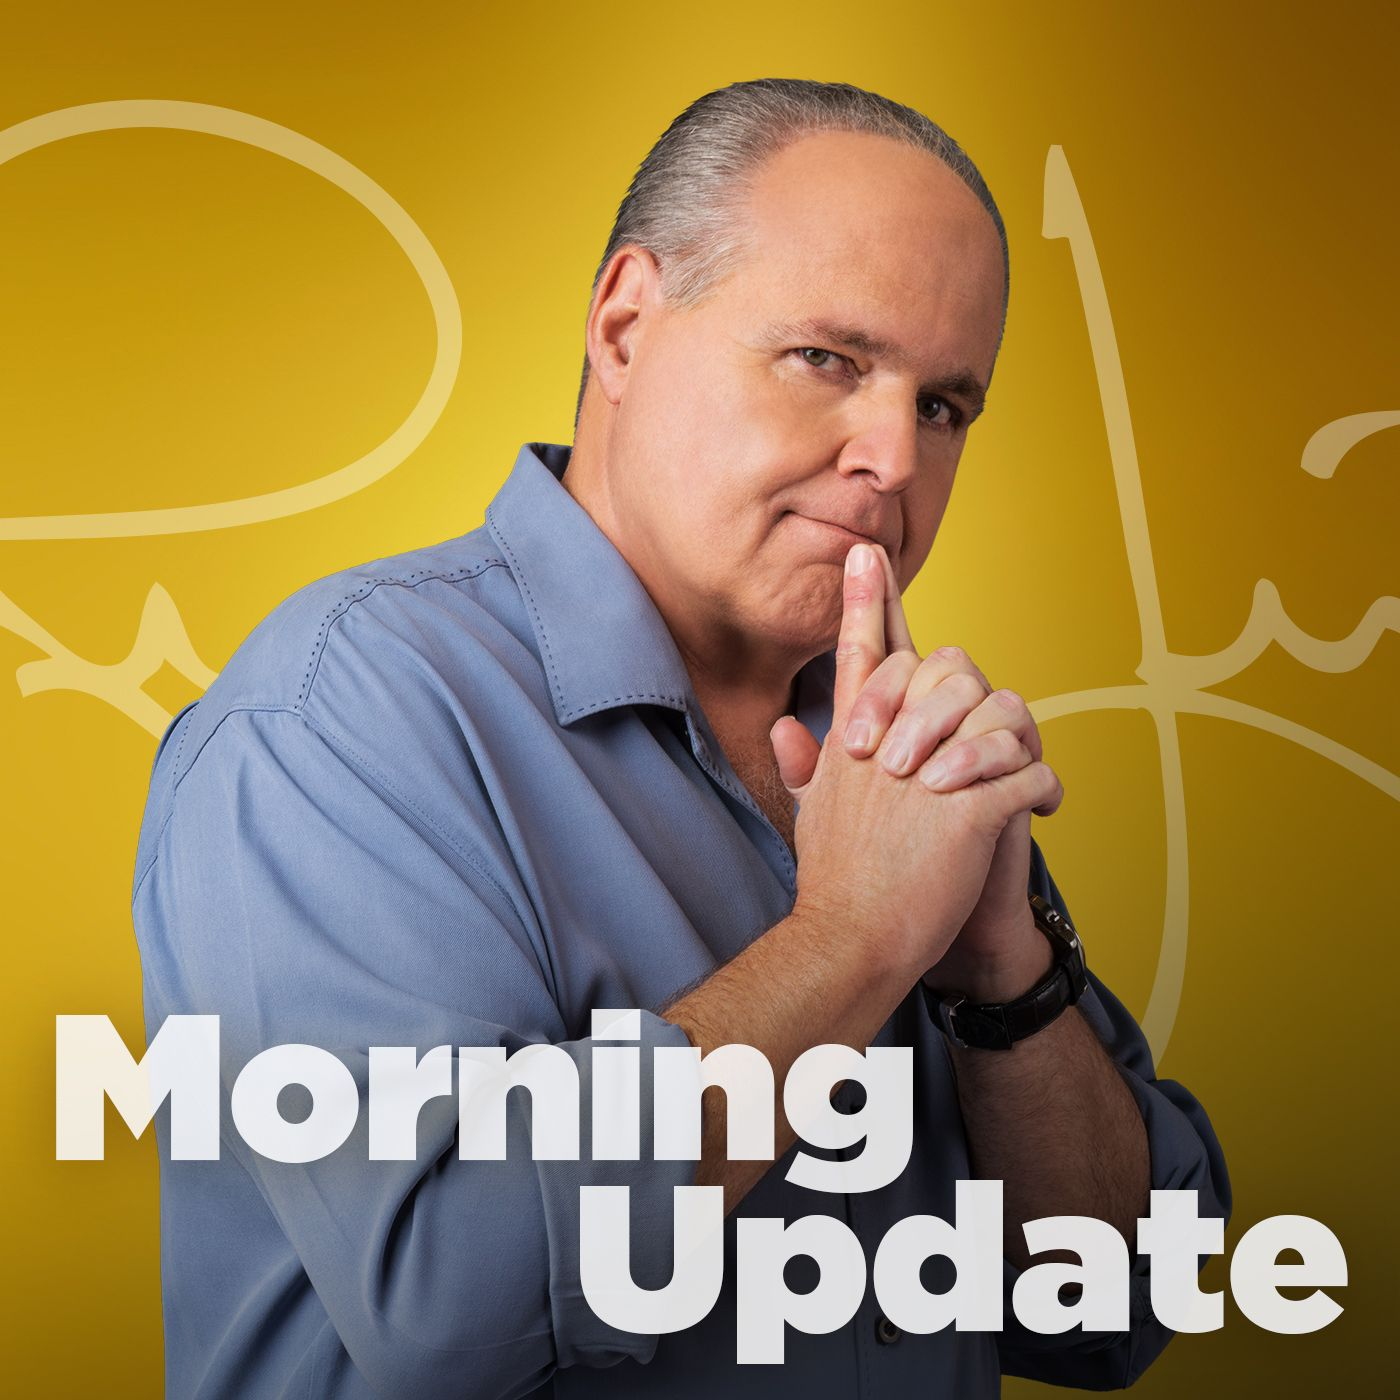 Rush Limbaugh Jun 26, 2020